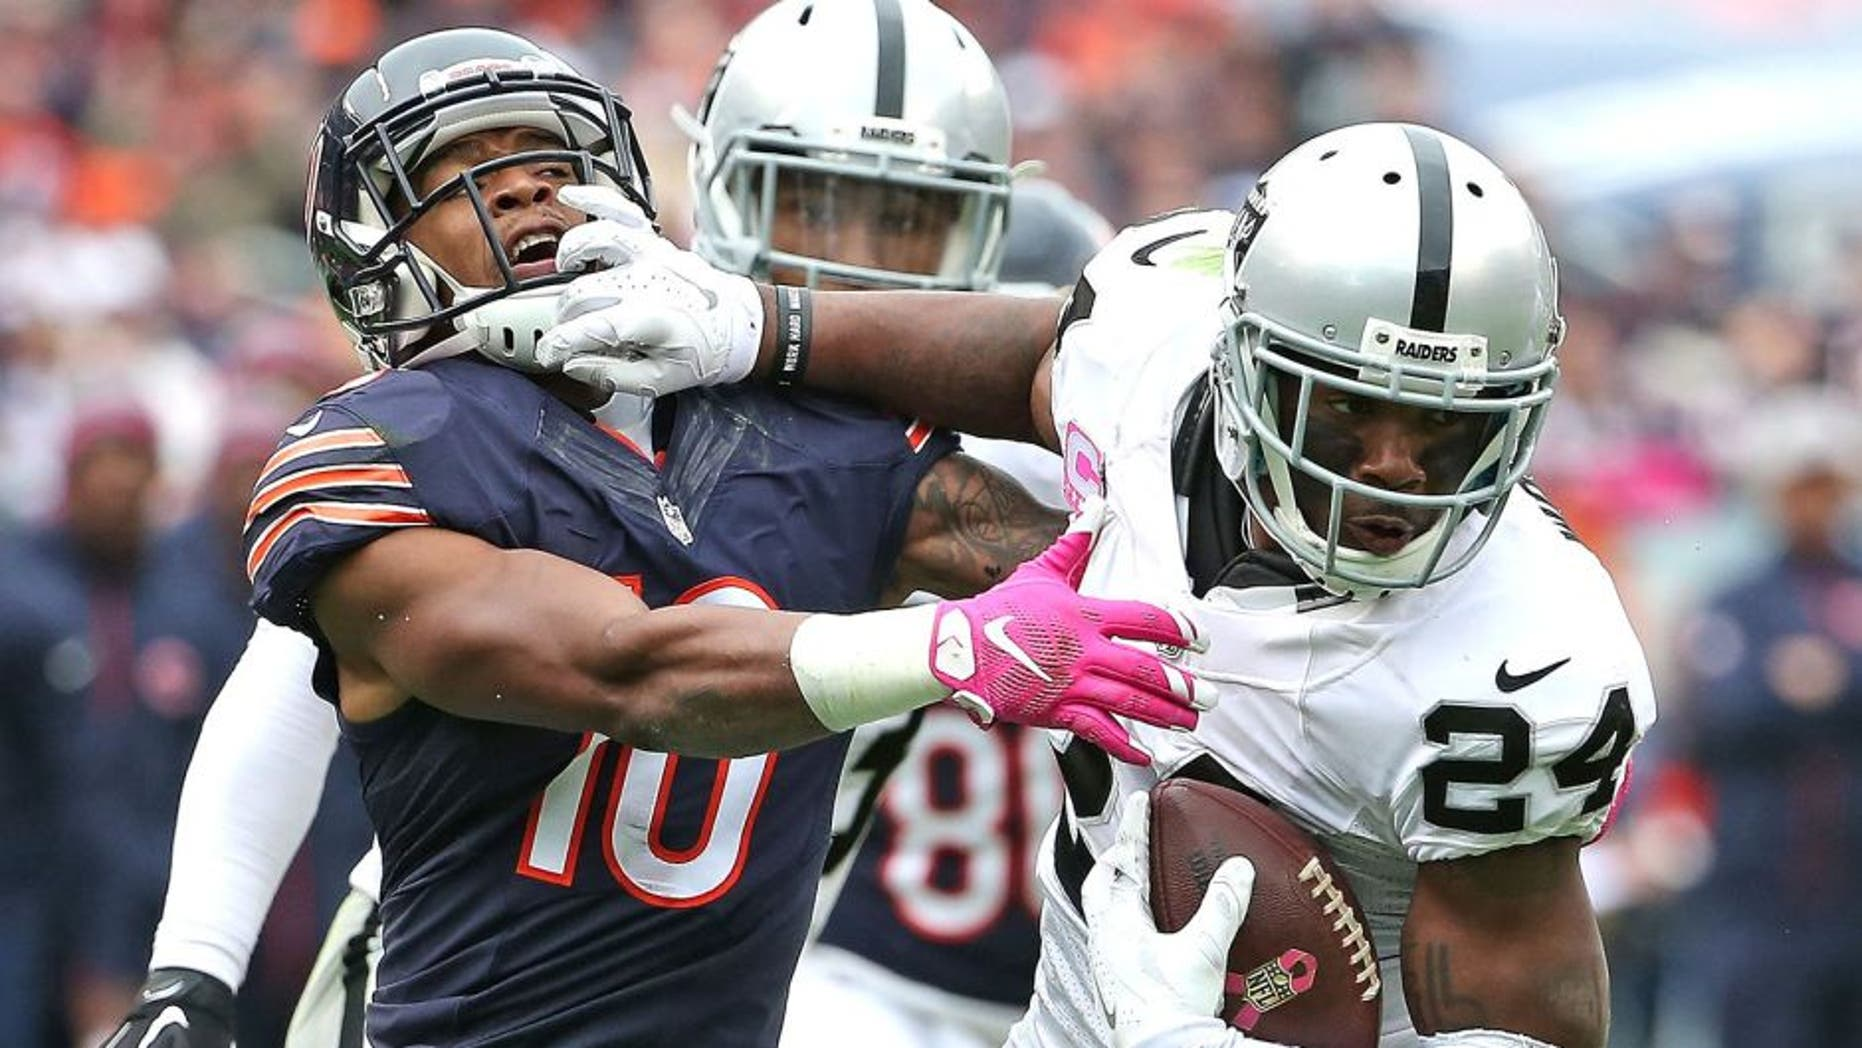 CHICAGO, IL - OCTOBER 04: Charles Woodson #24 of the Oakland Raiders breaks way from Marquess Wilson #10 of the Chicago Bears after intercepting a pass in the 4th quarter at Soldier Field on October 4, 2015 in Chicago, Illinois. The Bears defeated the Raiders 22-20. (Photo by Jonathan Daniel/Getty Images)